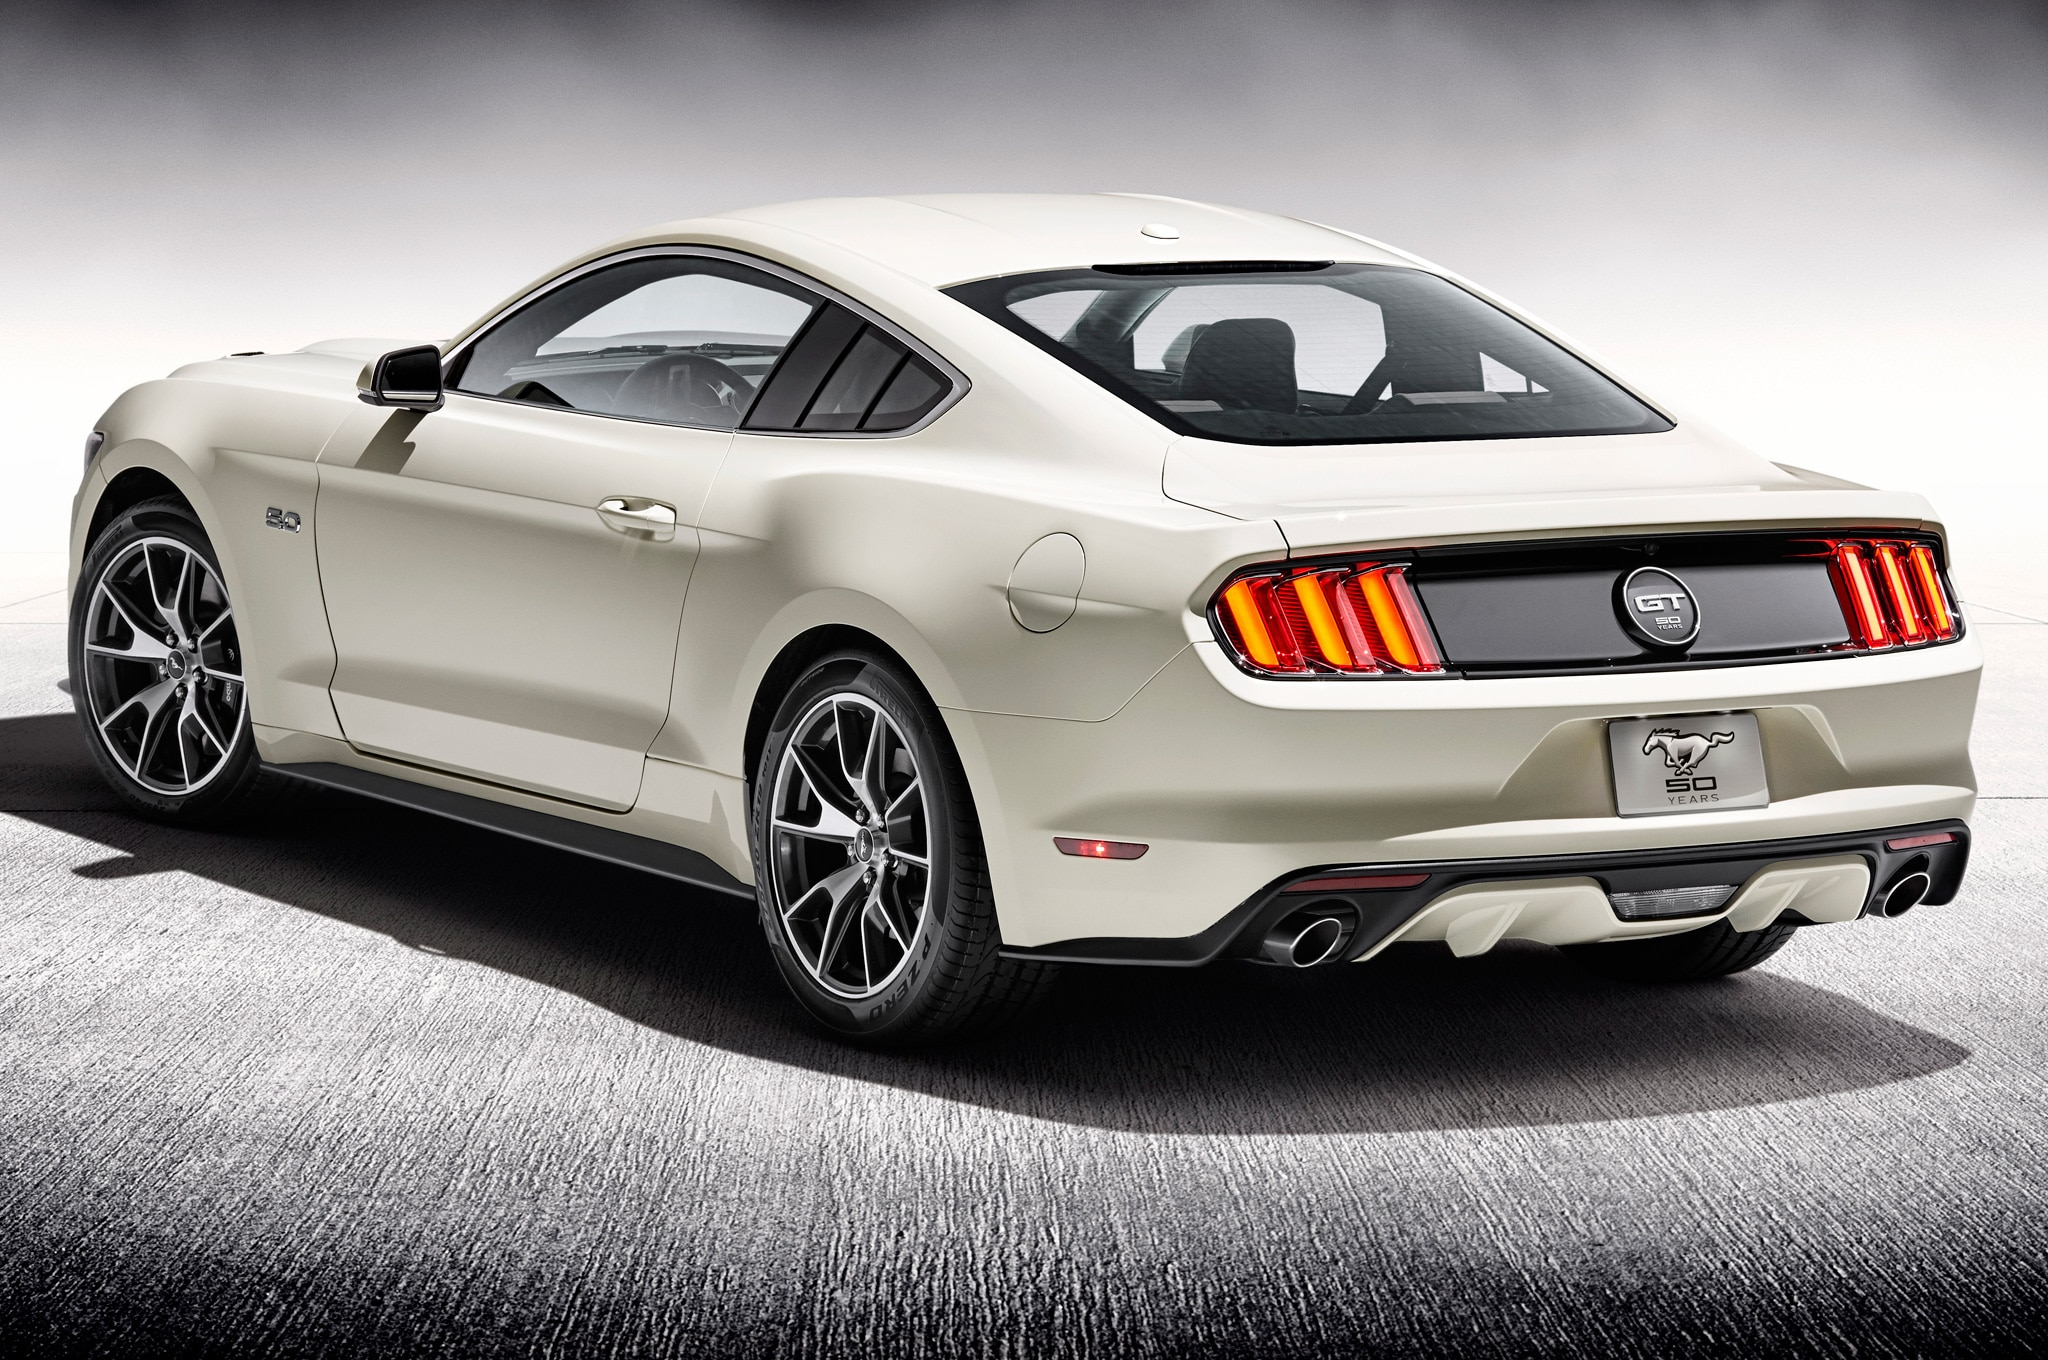 2015 Mustang Gt Pictures 2015 Ford Mustang Review